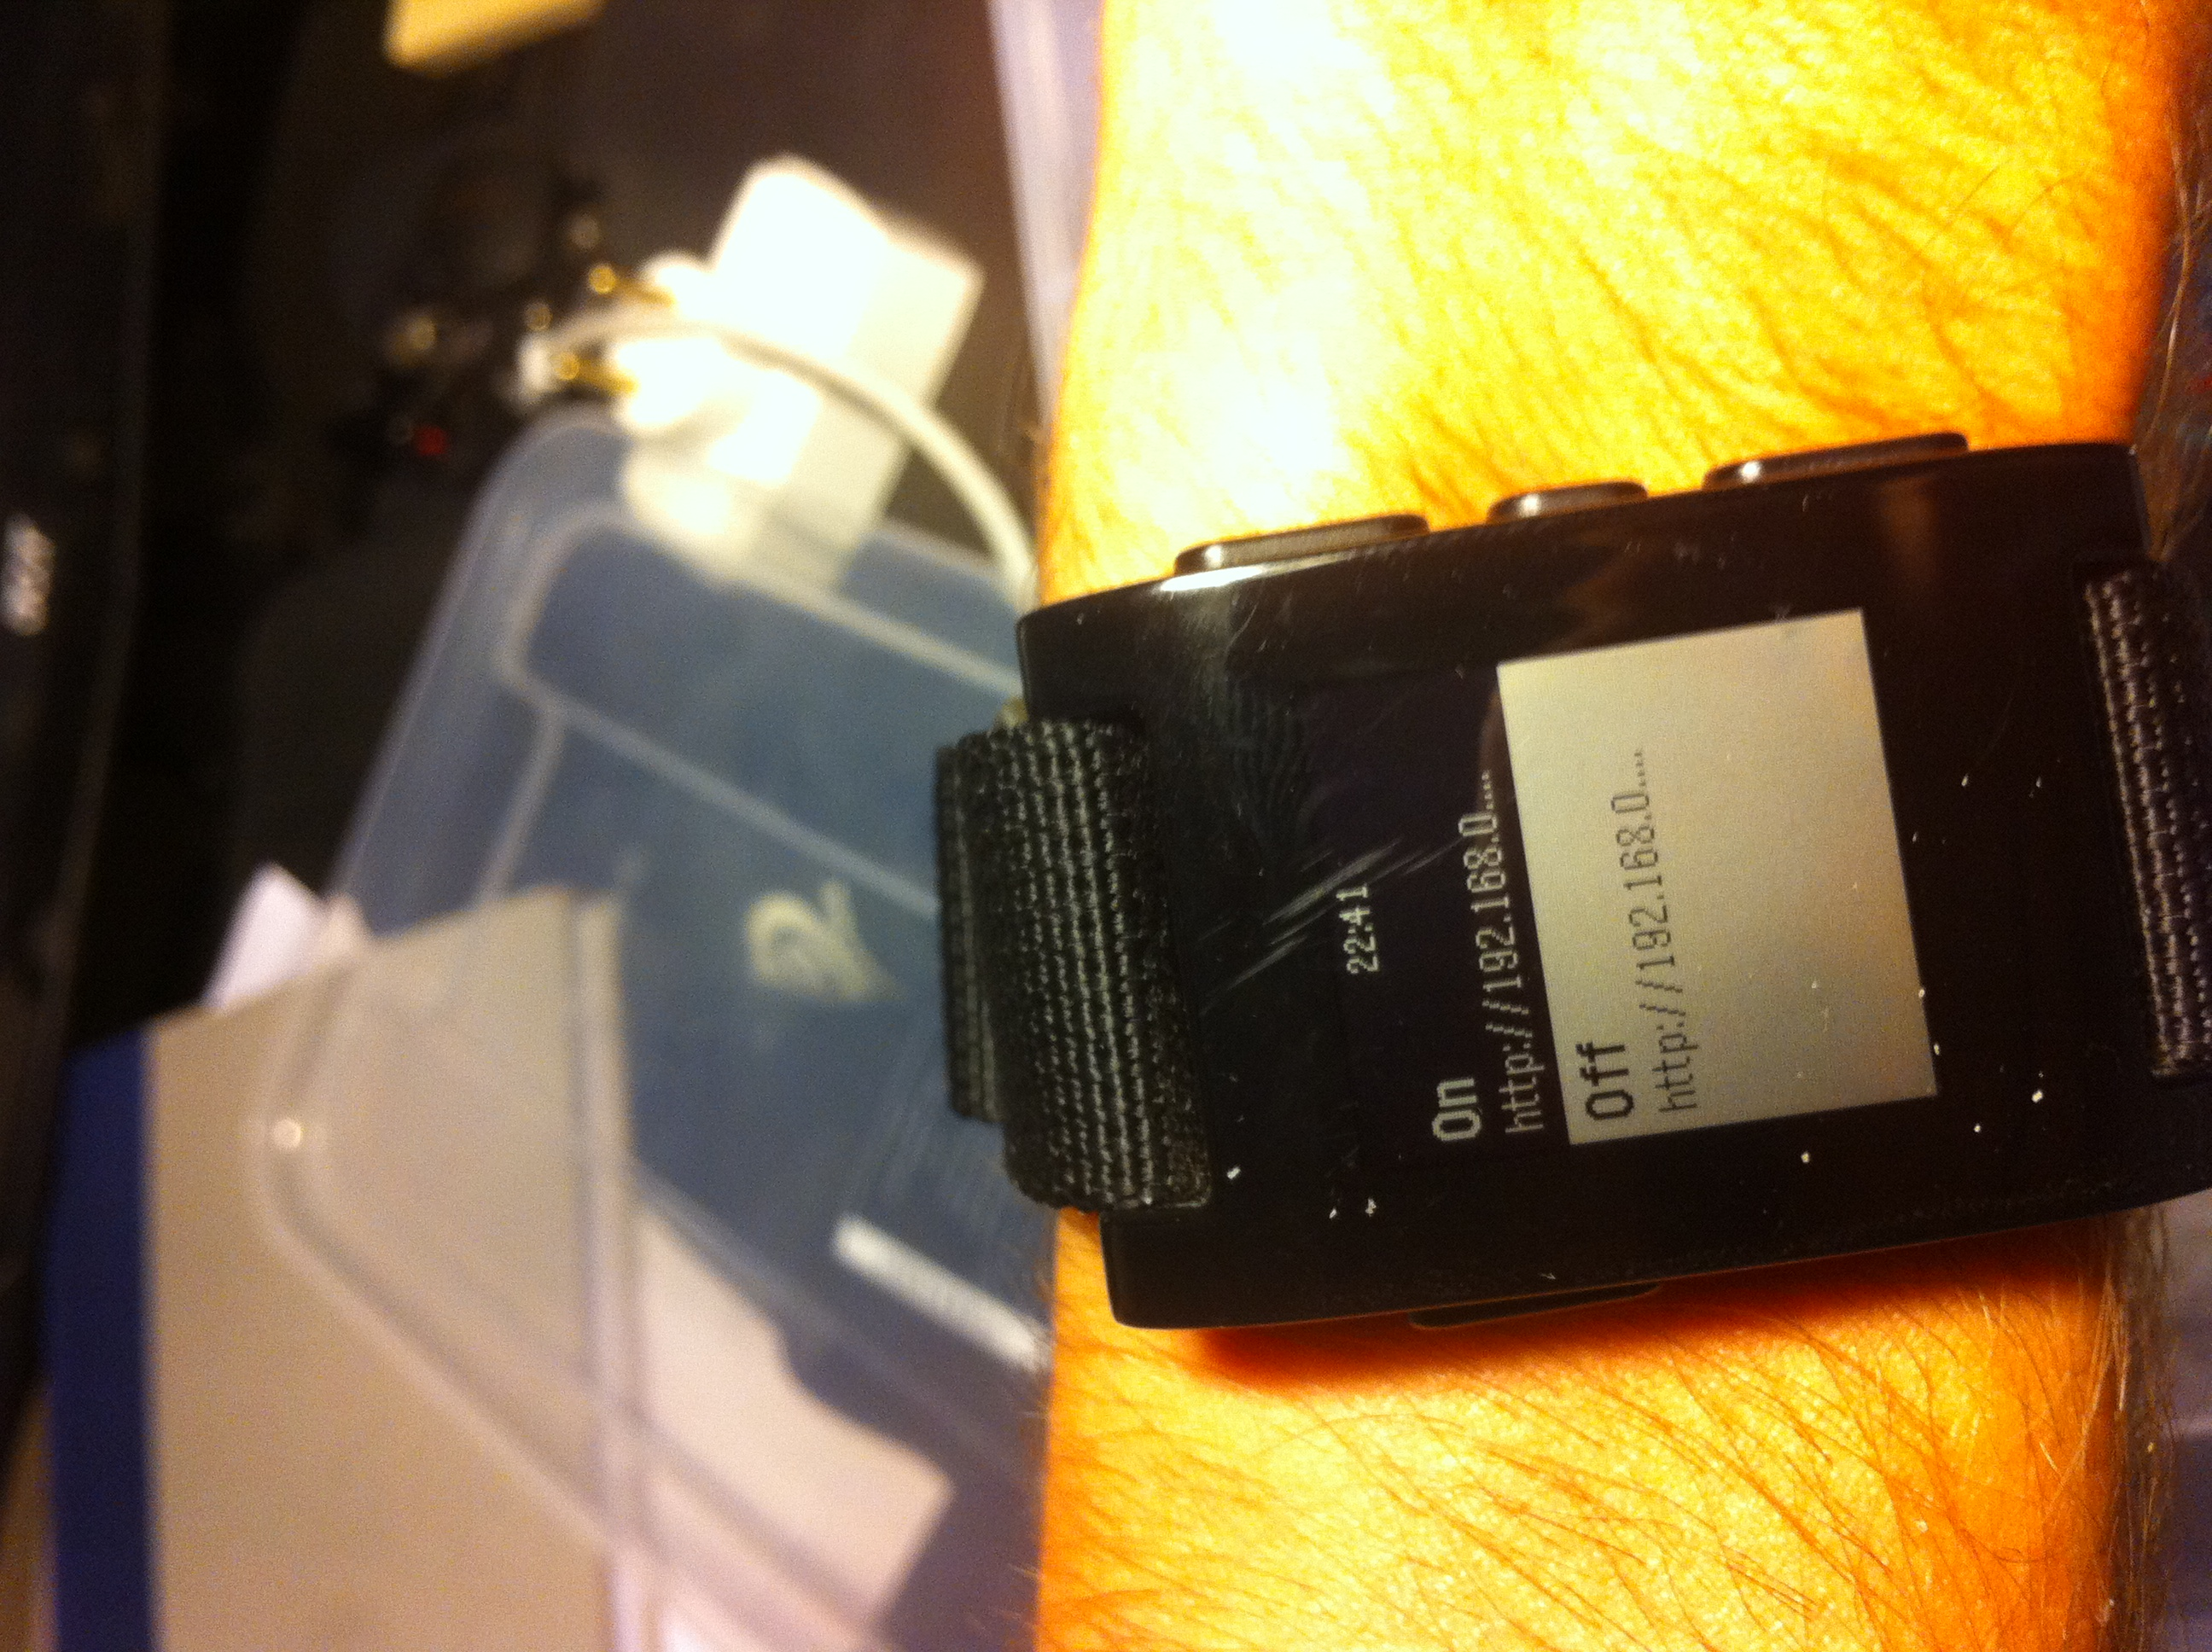 Control lights with the Pebble smartwatch and the Arduino